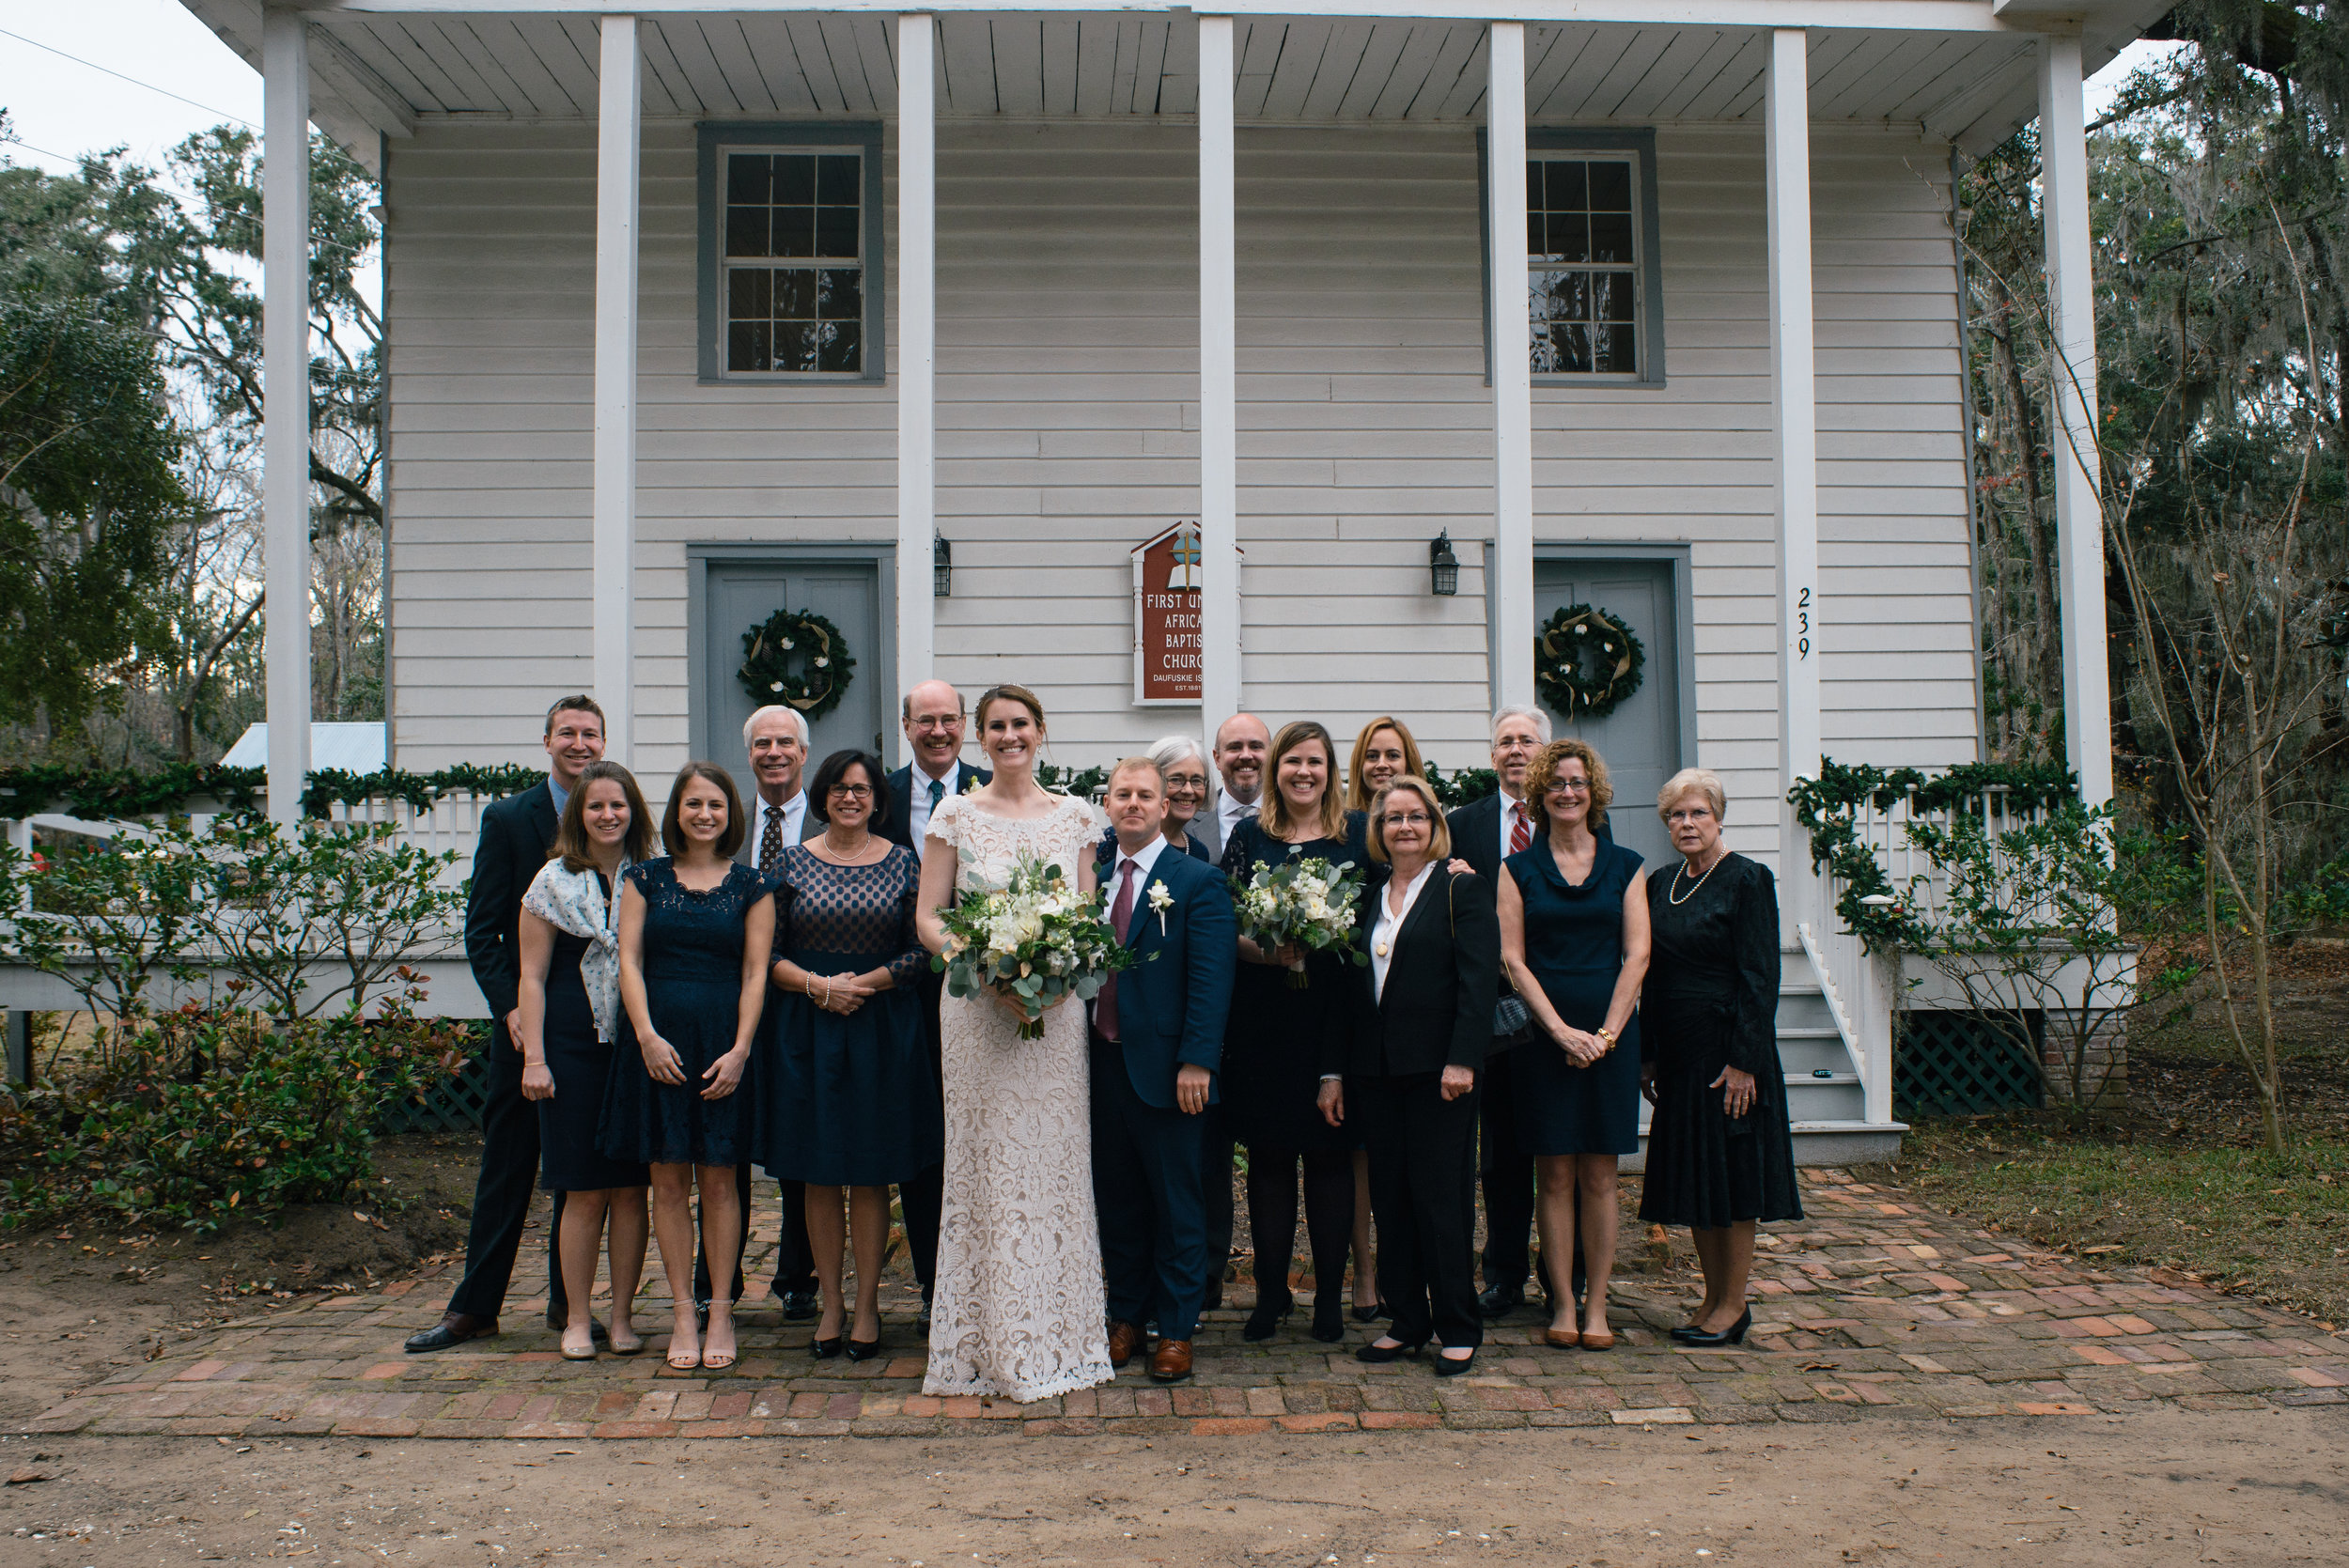 emily-and-david-daufuskie-island-wedding-december-wedding-meg-hill-photo- (158 of 728).jpg